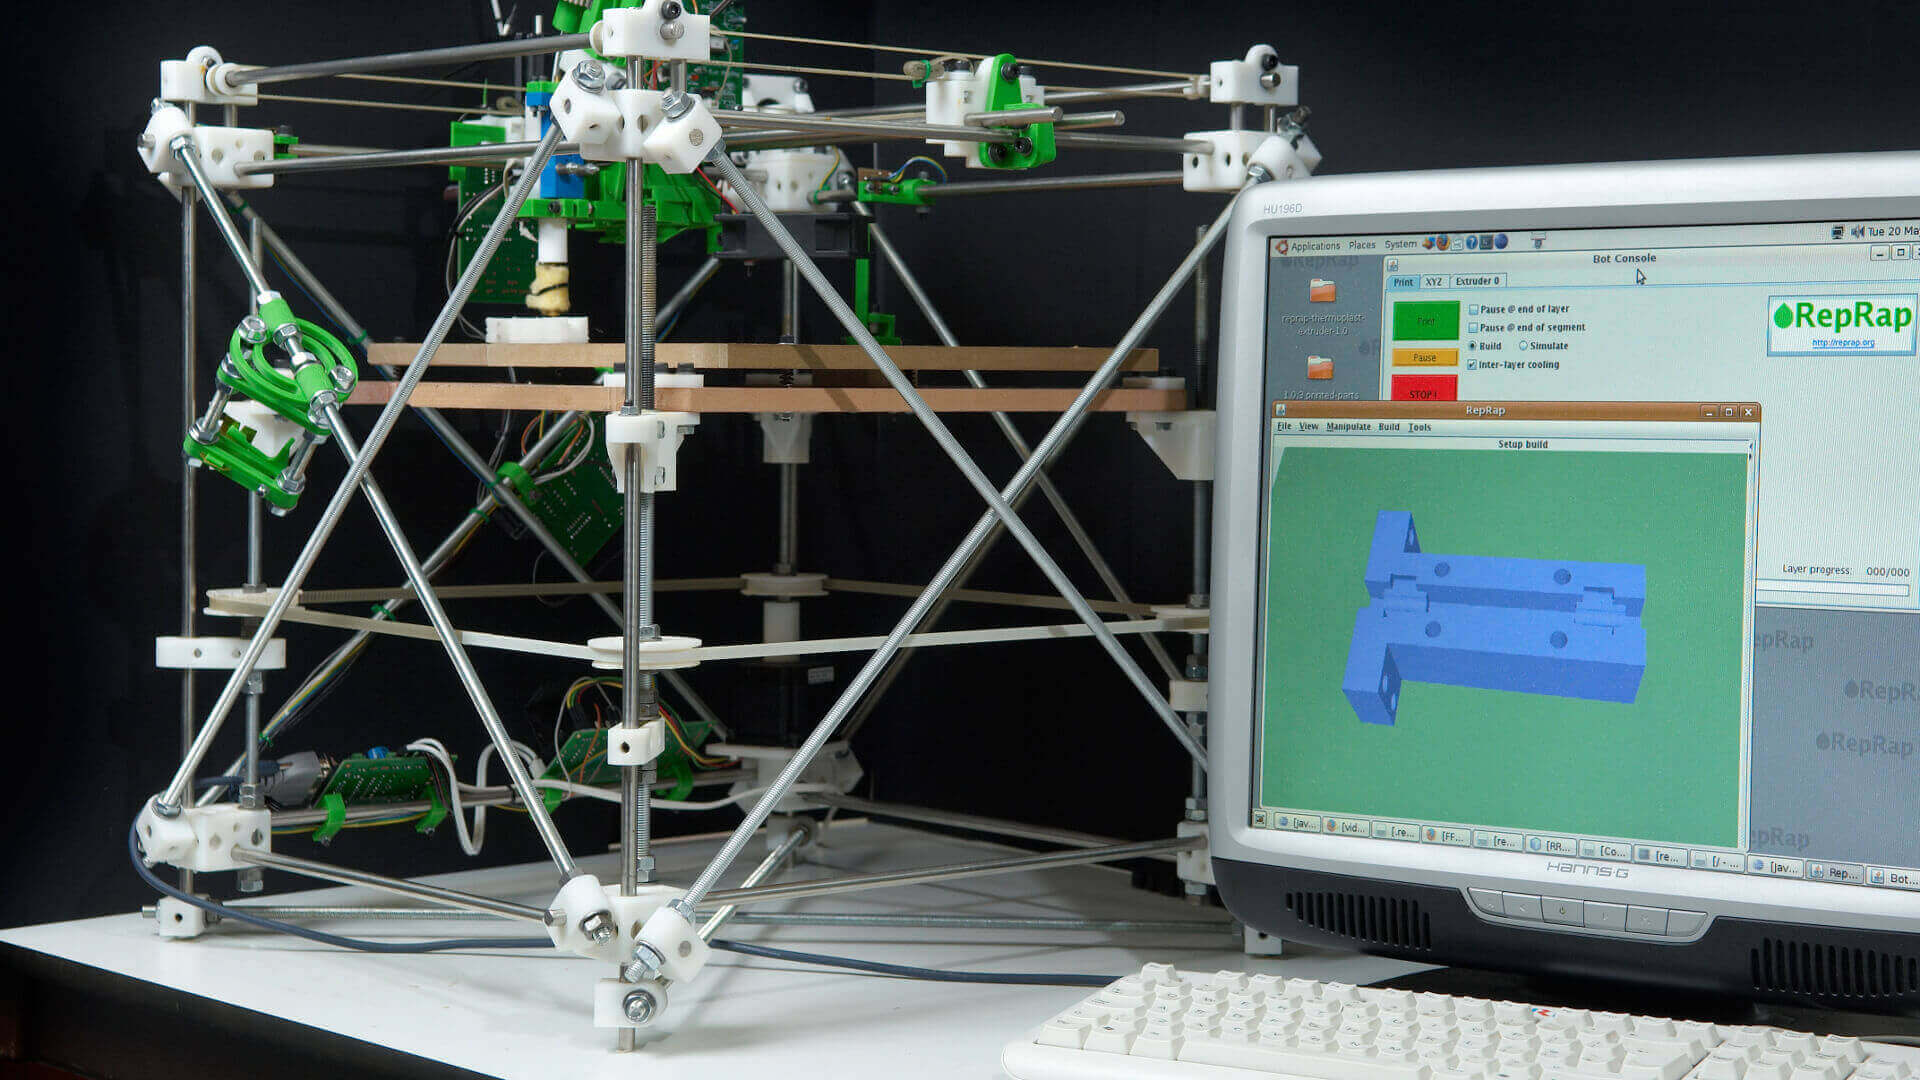 The Official History of the RepRap Project | All3DP